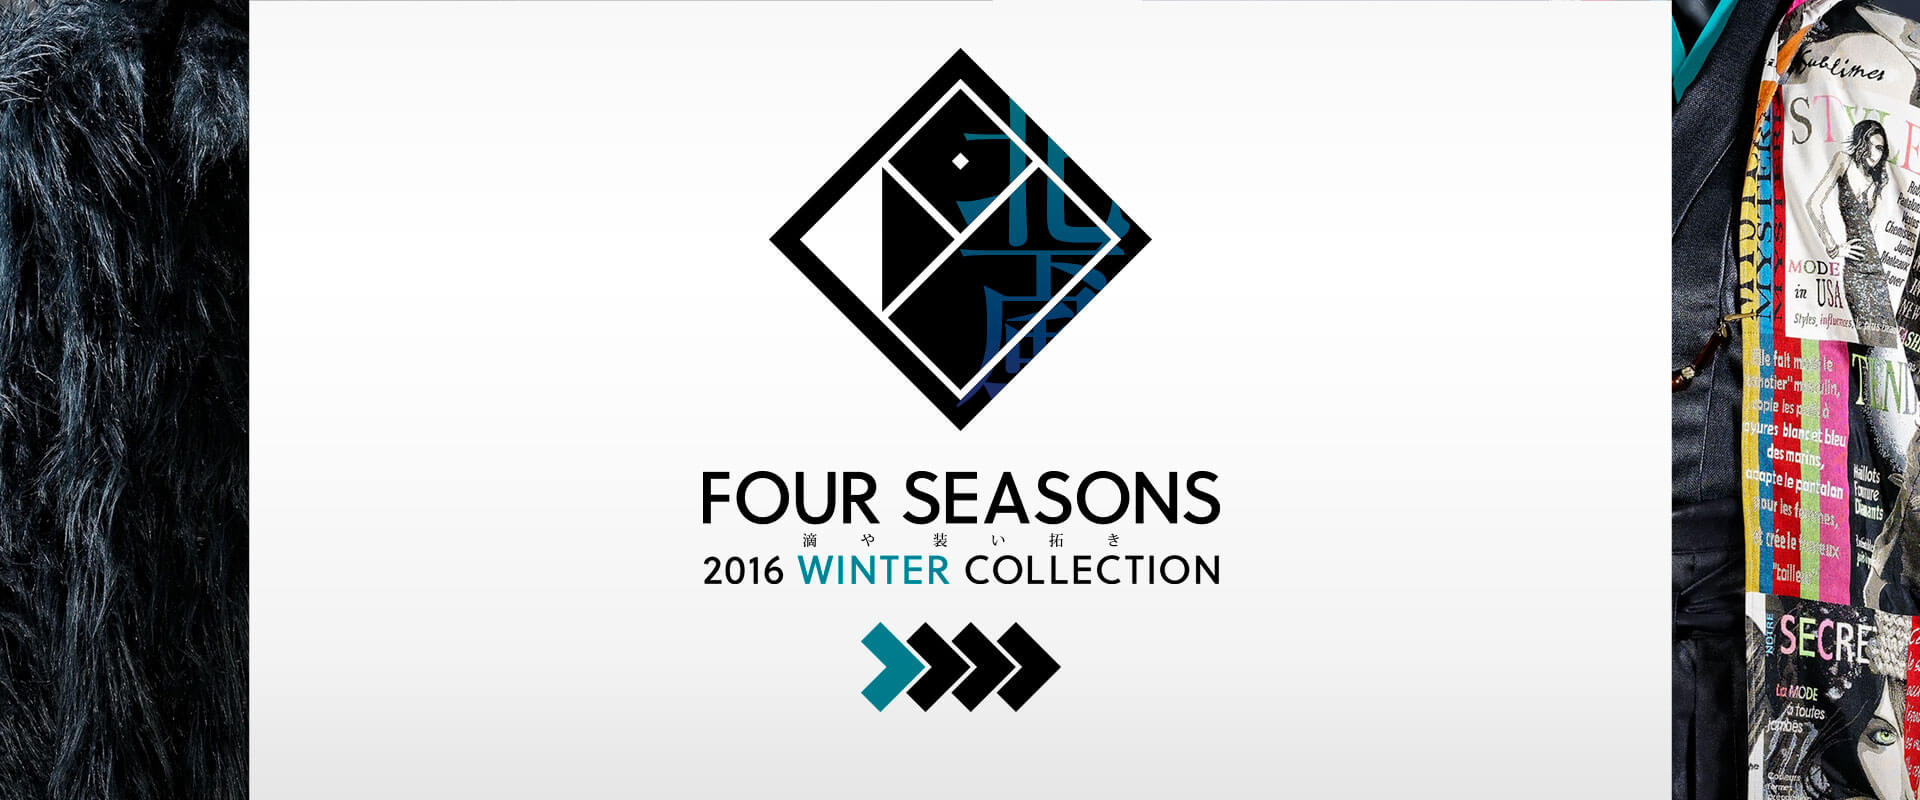 FOUR SEASONS 2016 WINTER COLLECTION